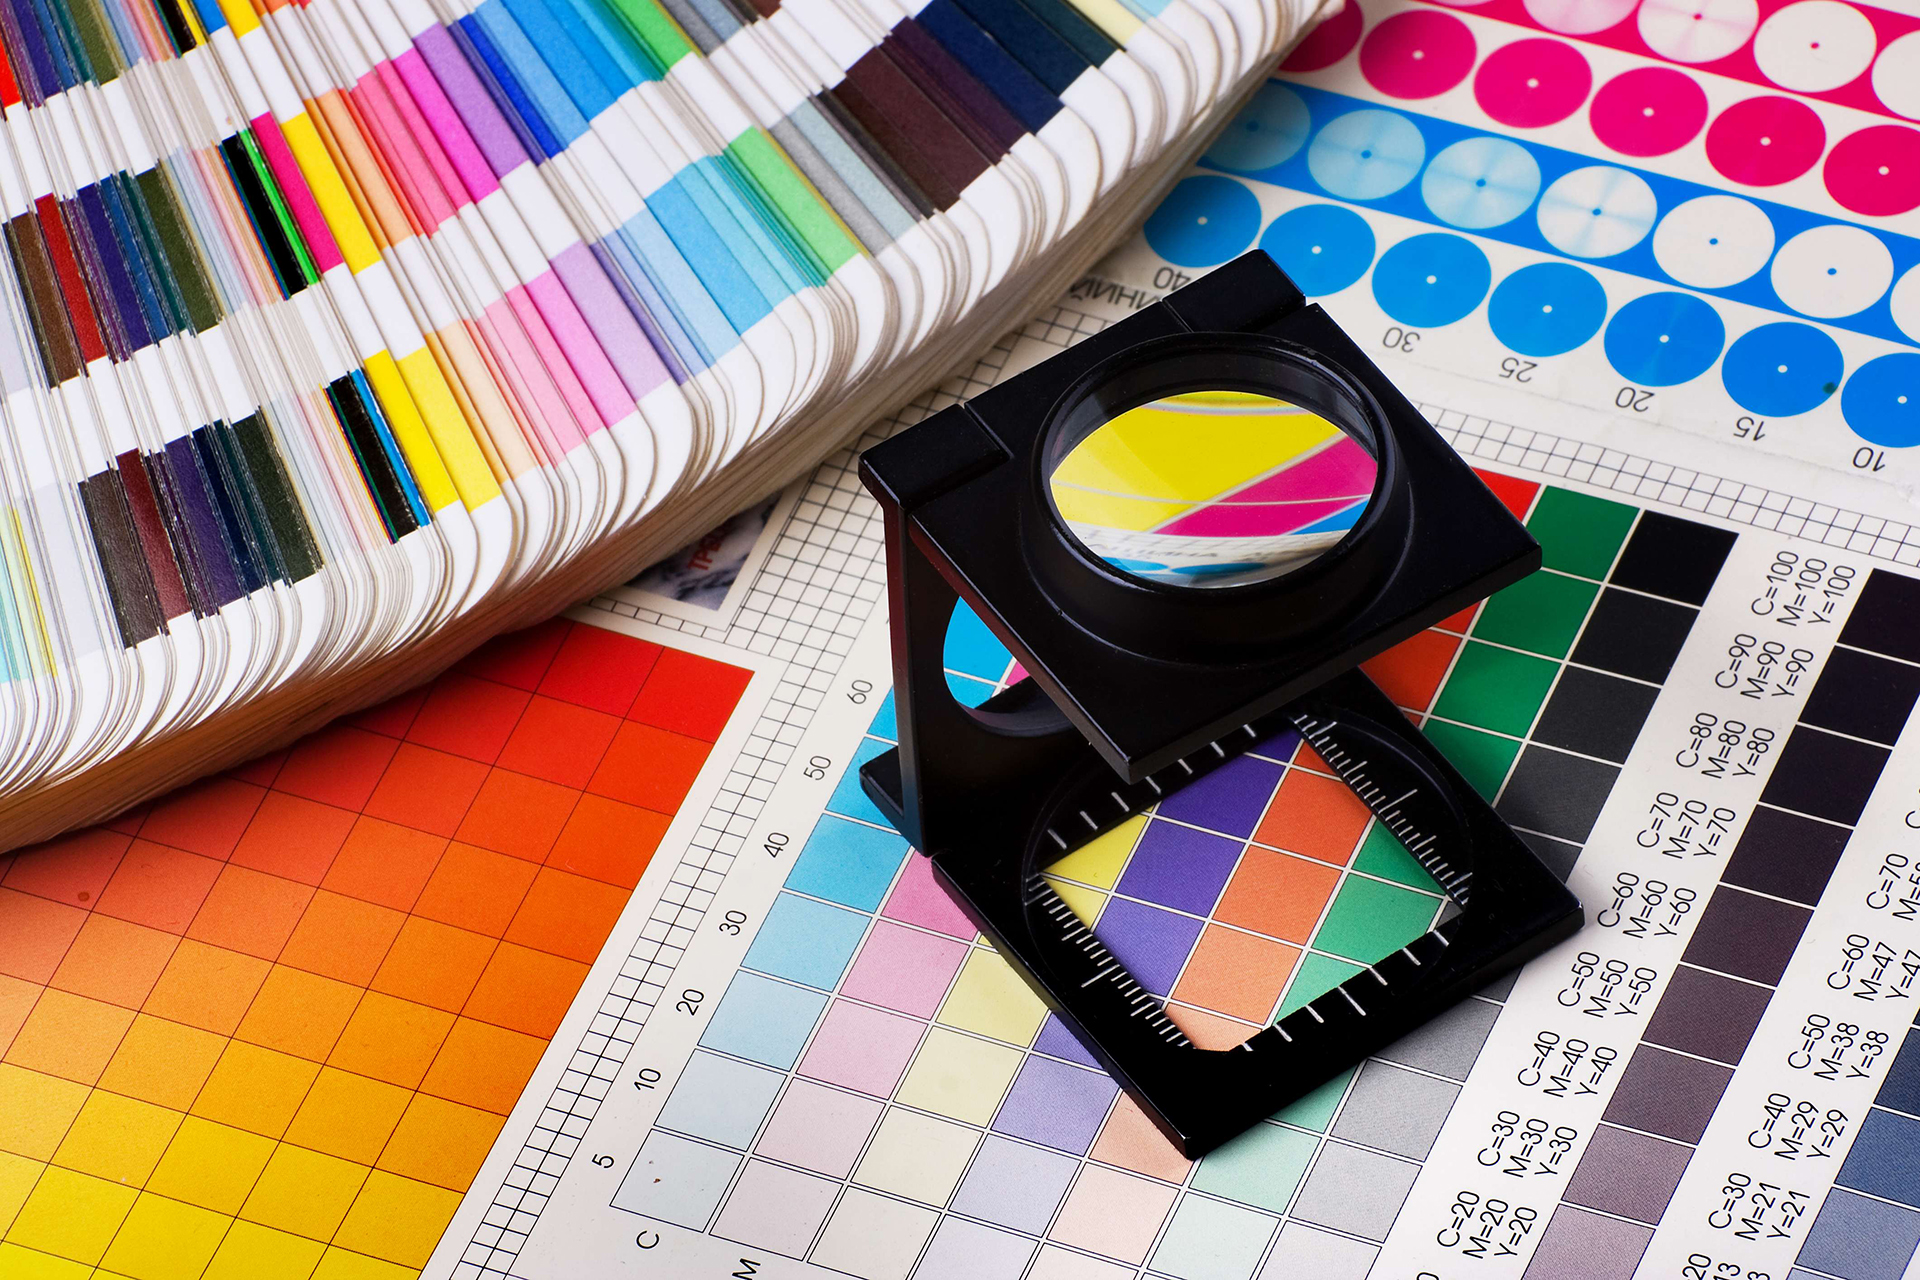 Color printing colorado springs - Home_image2